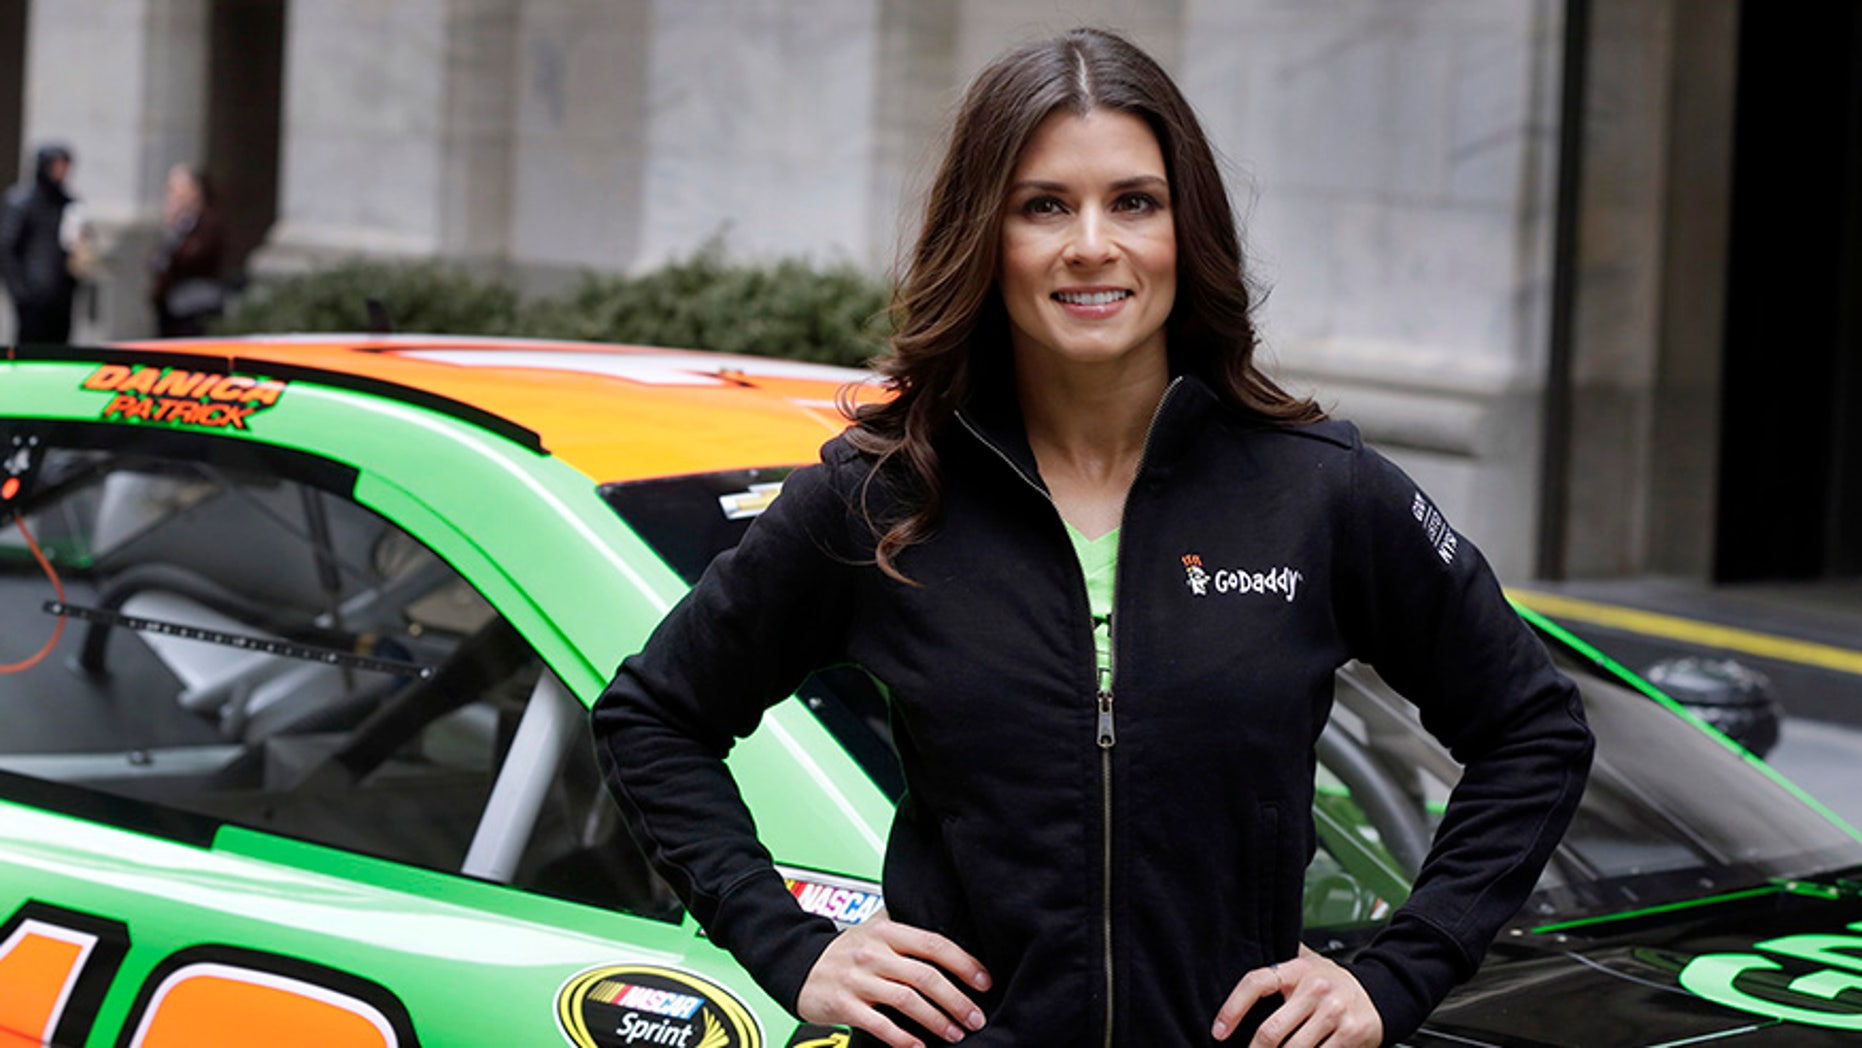 Danica Patrick stands in front of the New York Stock Exchange ahead of GoDaddy's 2015 IPO.